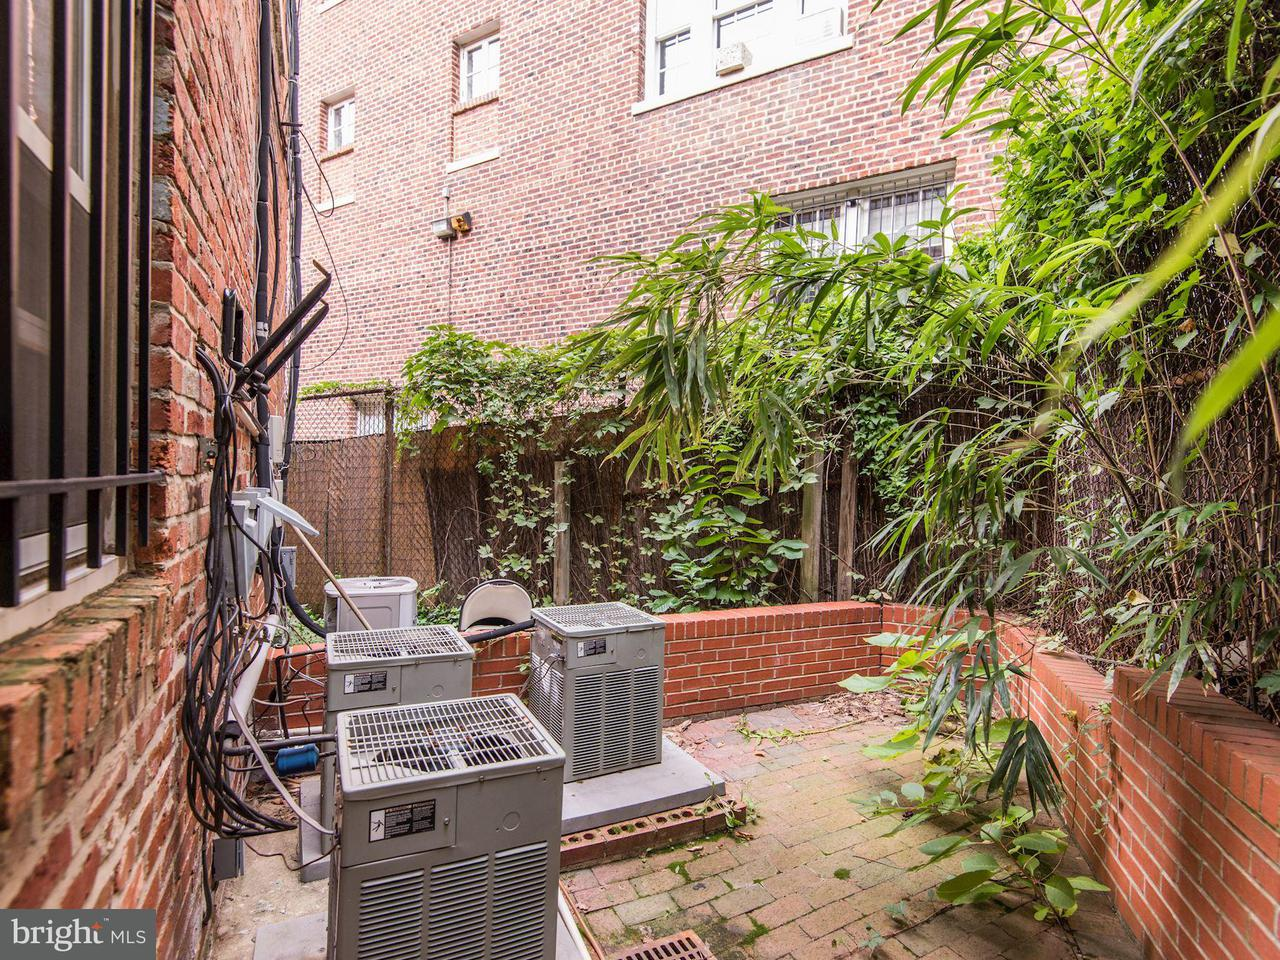 Additional photo for property listing at 2303 17th St Nw 2303 17th St Nw Washington, District Of Columbia 20009 United States